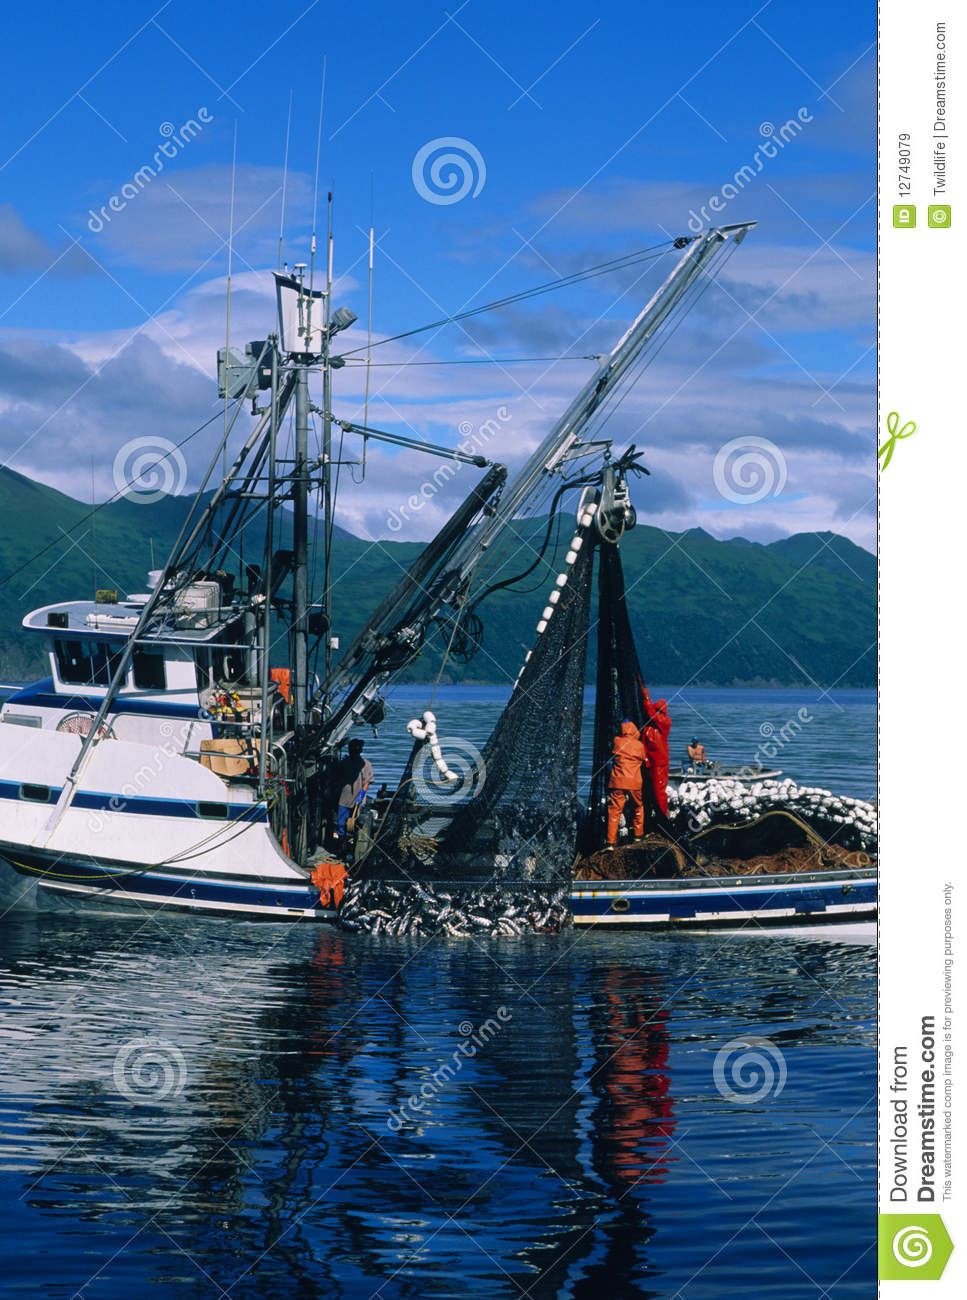 Commercial salmon fishing royalty free stock images for What is commercial fishing